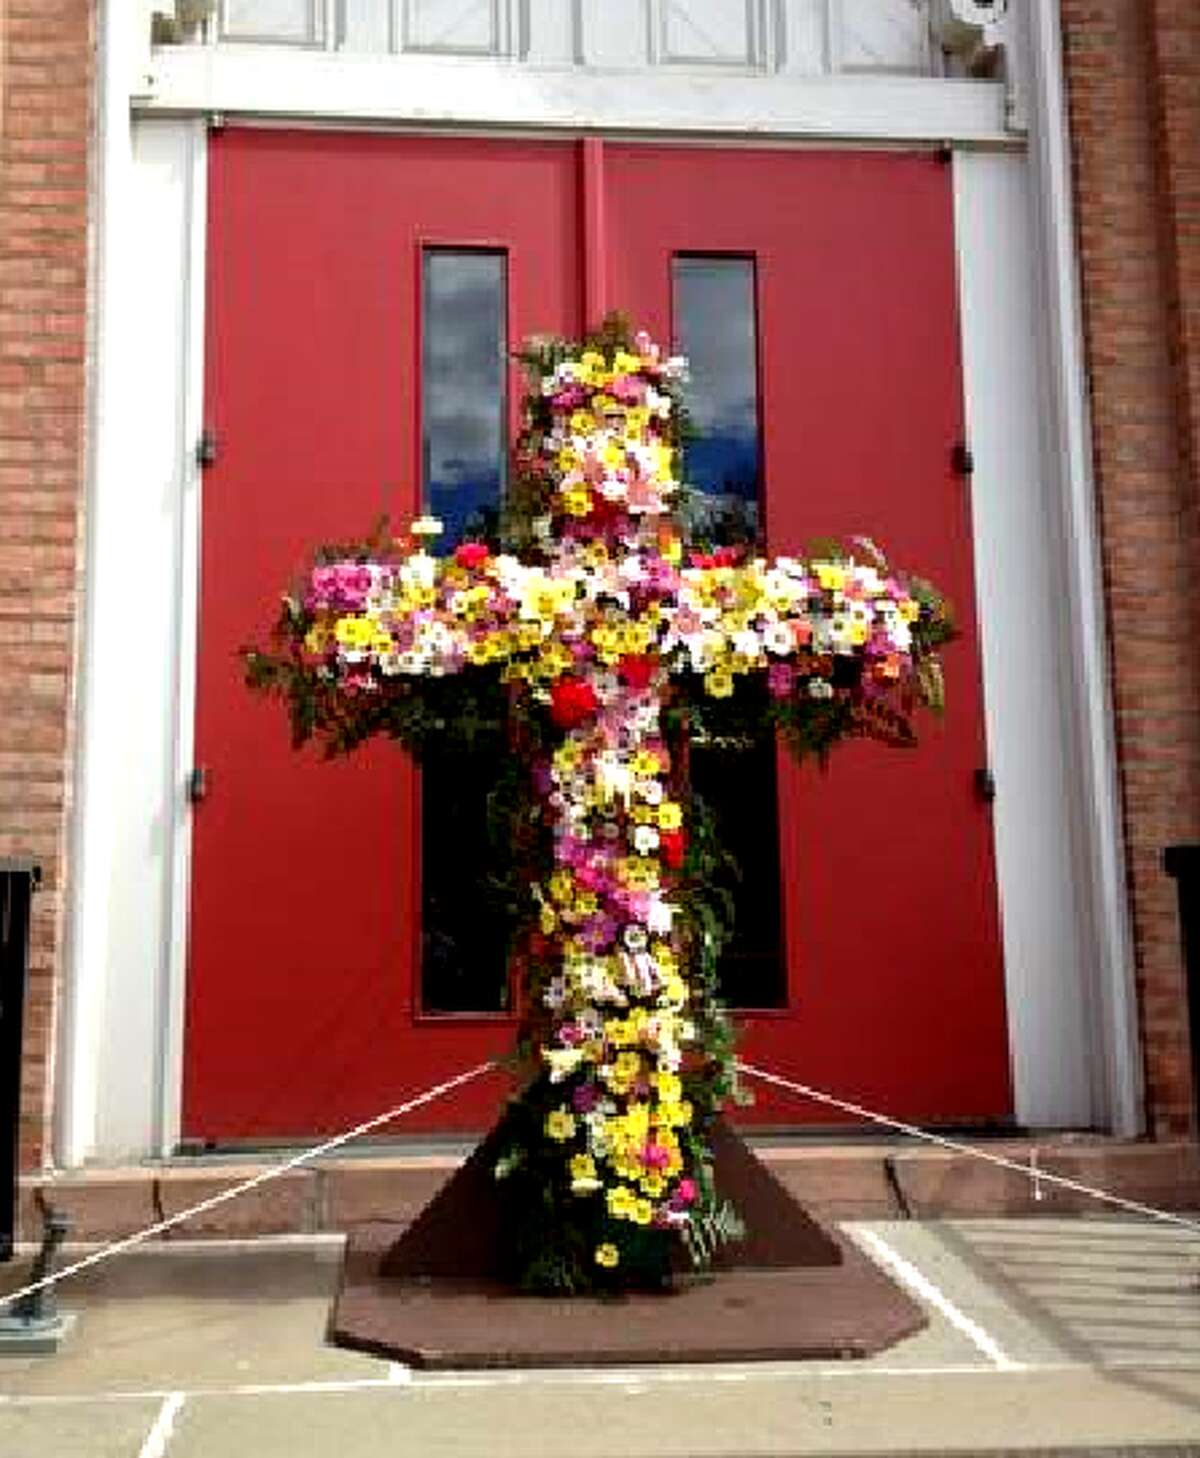 Enjoy a charming Easter tradition at the First United Methodist Church at 603 State Street in downtown Schenectady. The 6:15 a.m. sunrise service will be held on the front lawn. Bring your own flowers (the church will be ready to offer you blossoms if you can't bring your own). Then, decorate the empty cross with blooms.